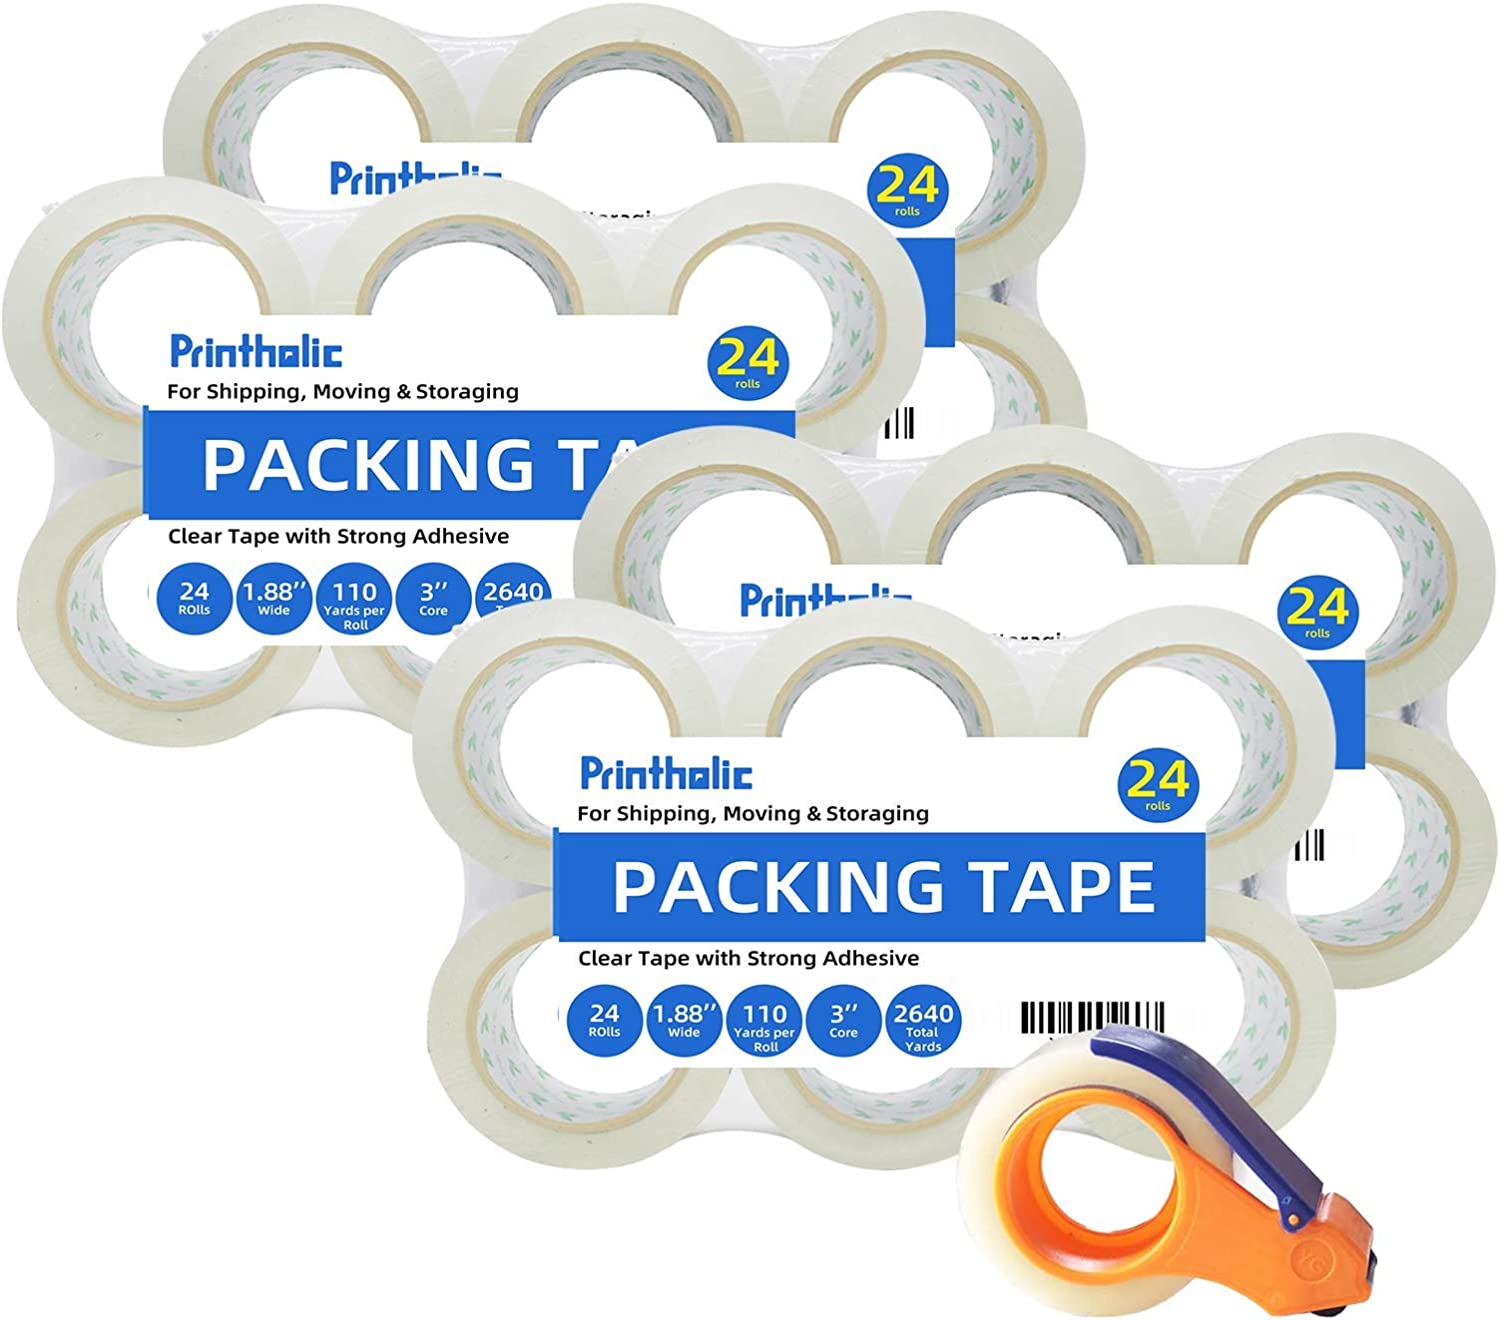 Printholic Packing Tape 24 Rolls 1.88 Inch x 110 Yards (with 1 Dispenser) Stronger and Thicker, Clear Packing Tape for Moving Packaging Shipping Office Storage, Transparent Tape Refills for Dispenser